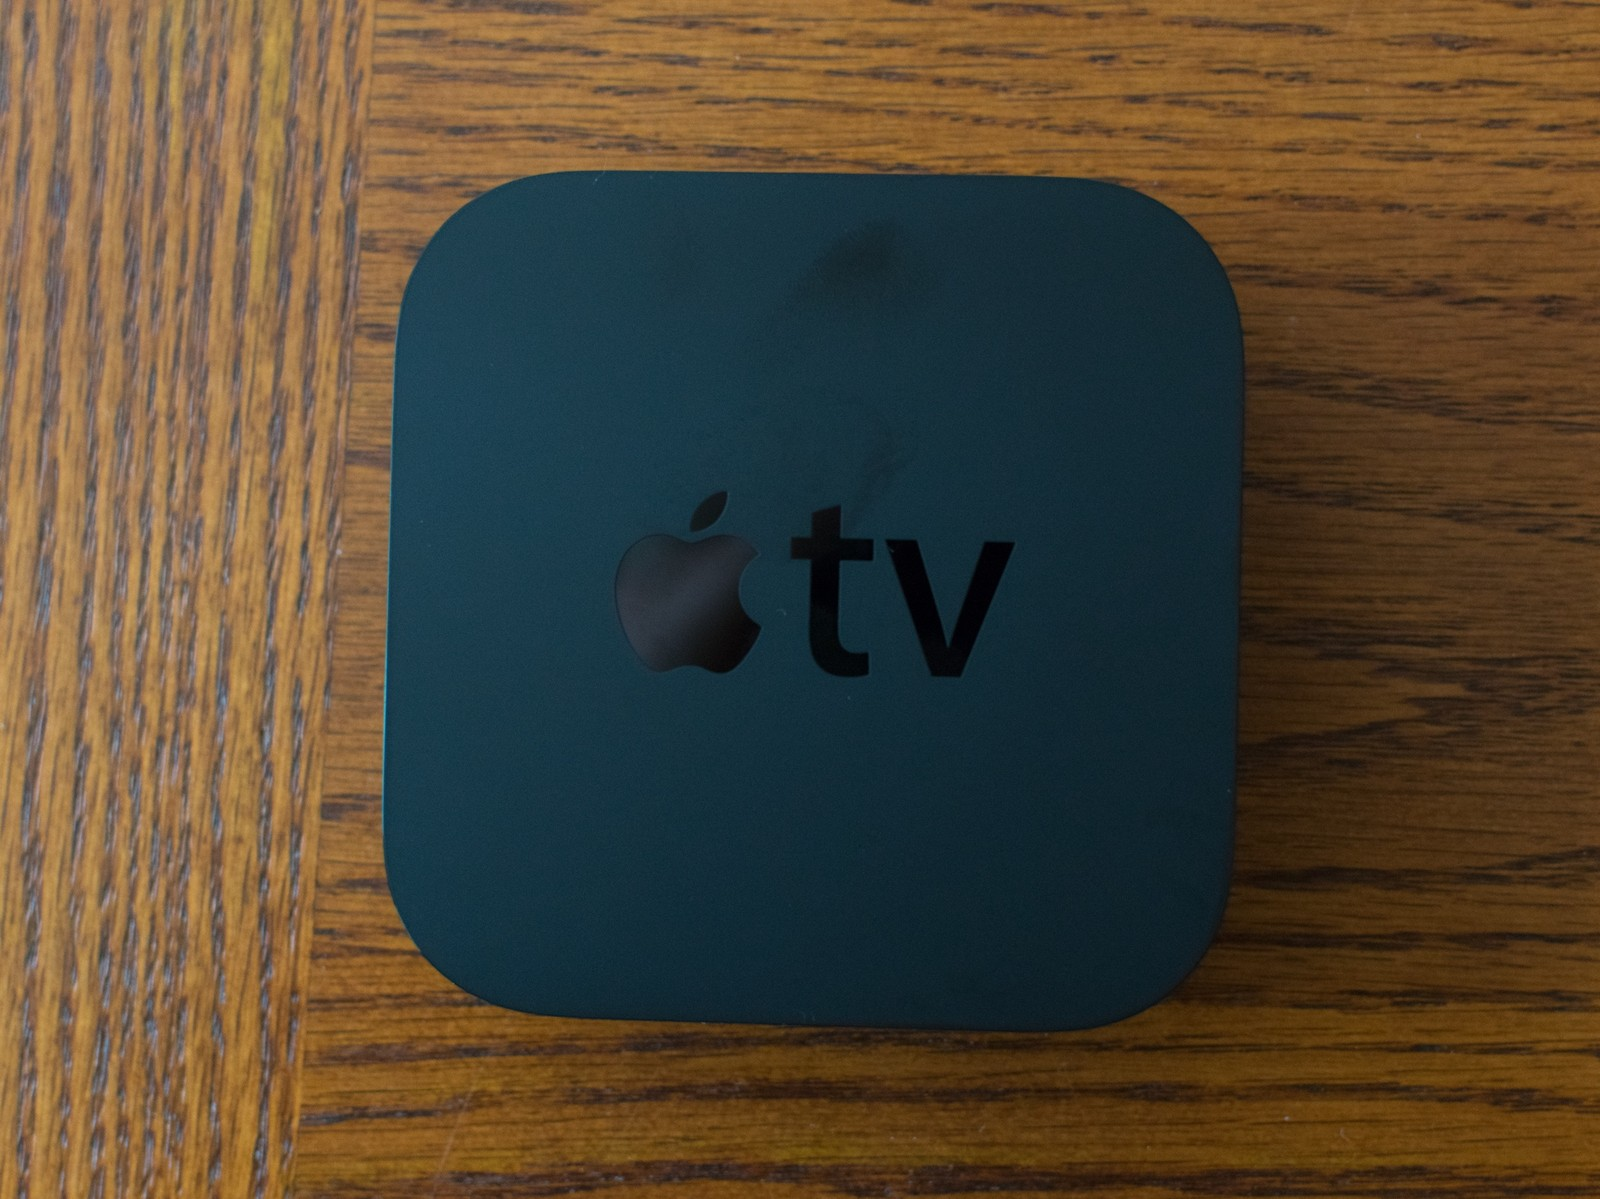 How to manage your storage on Apple TV